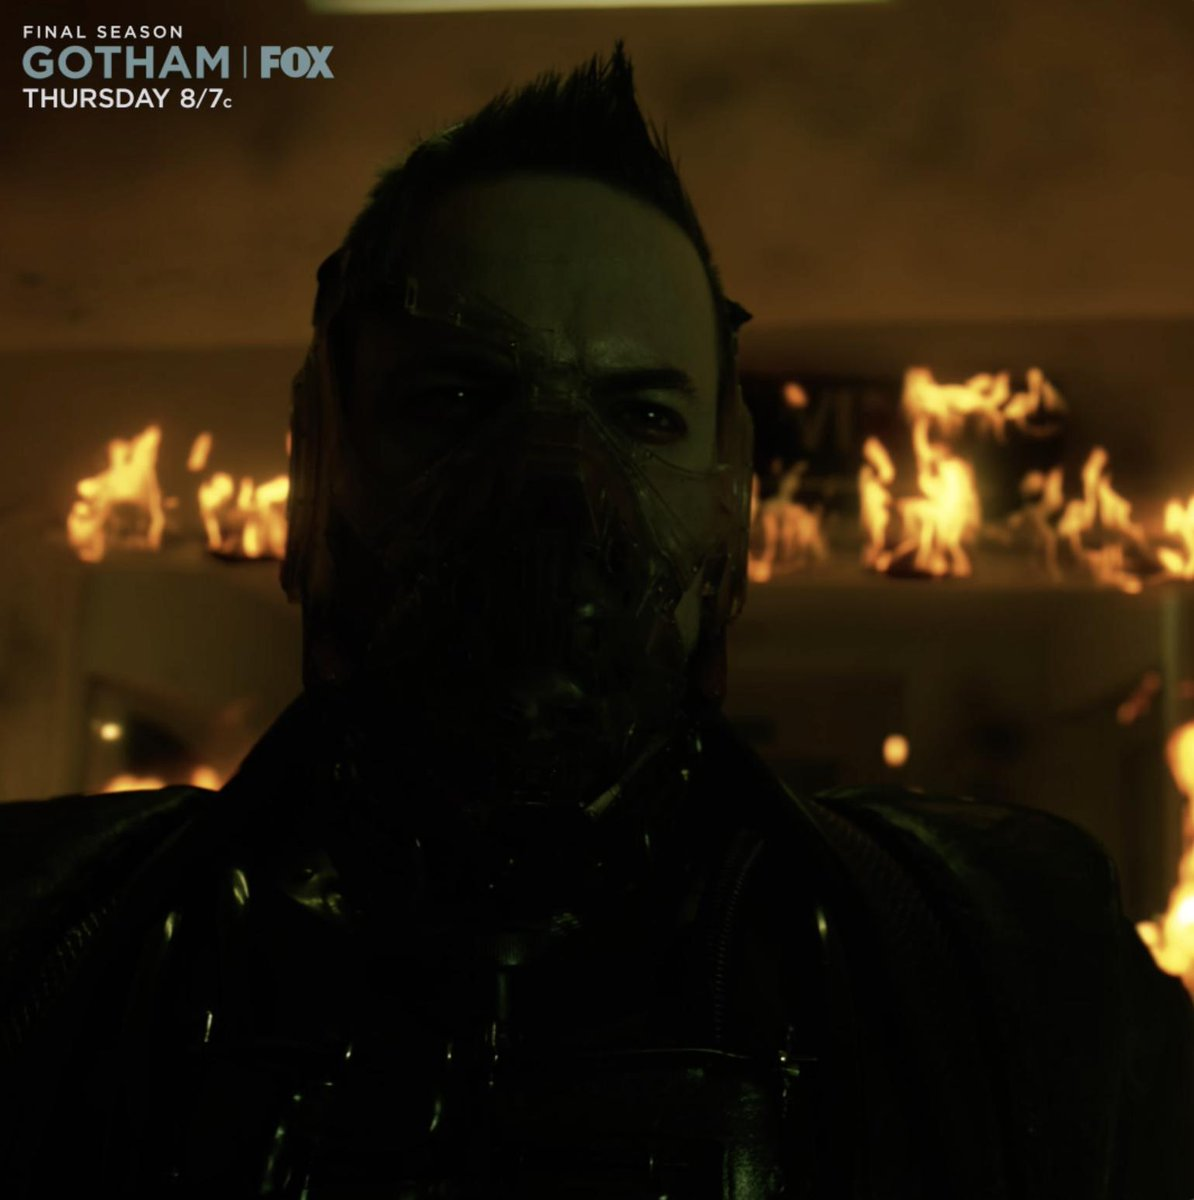 There are only THREE episodes of #Gotham left...   We'll take you to a new world on Thursday.